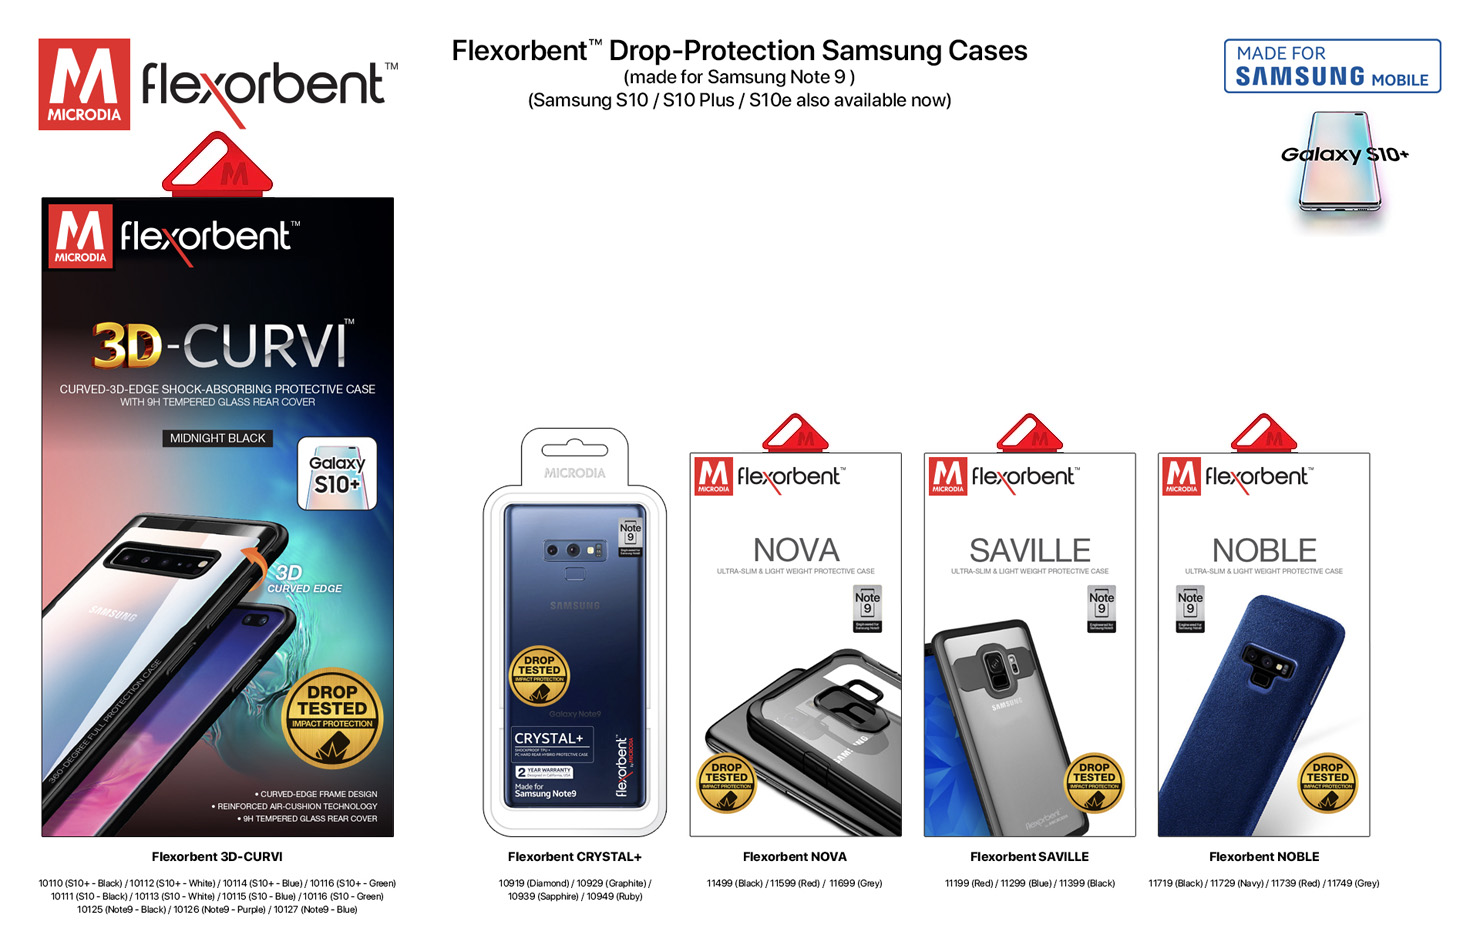 Flexorbent Drop-Protection Phone Cases3.